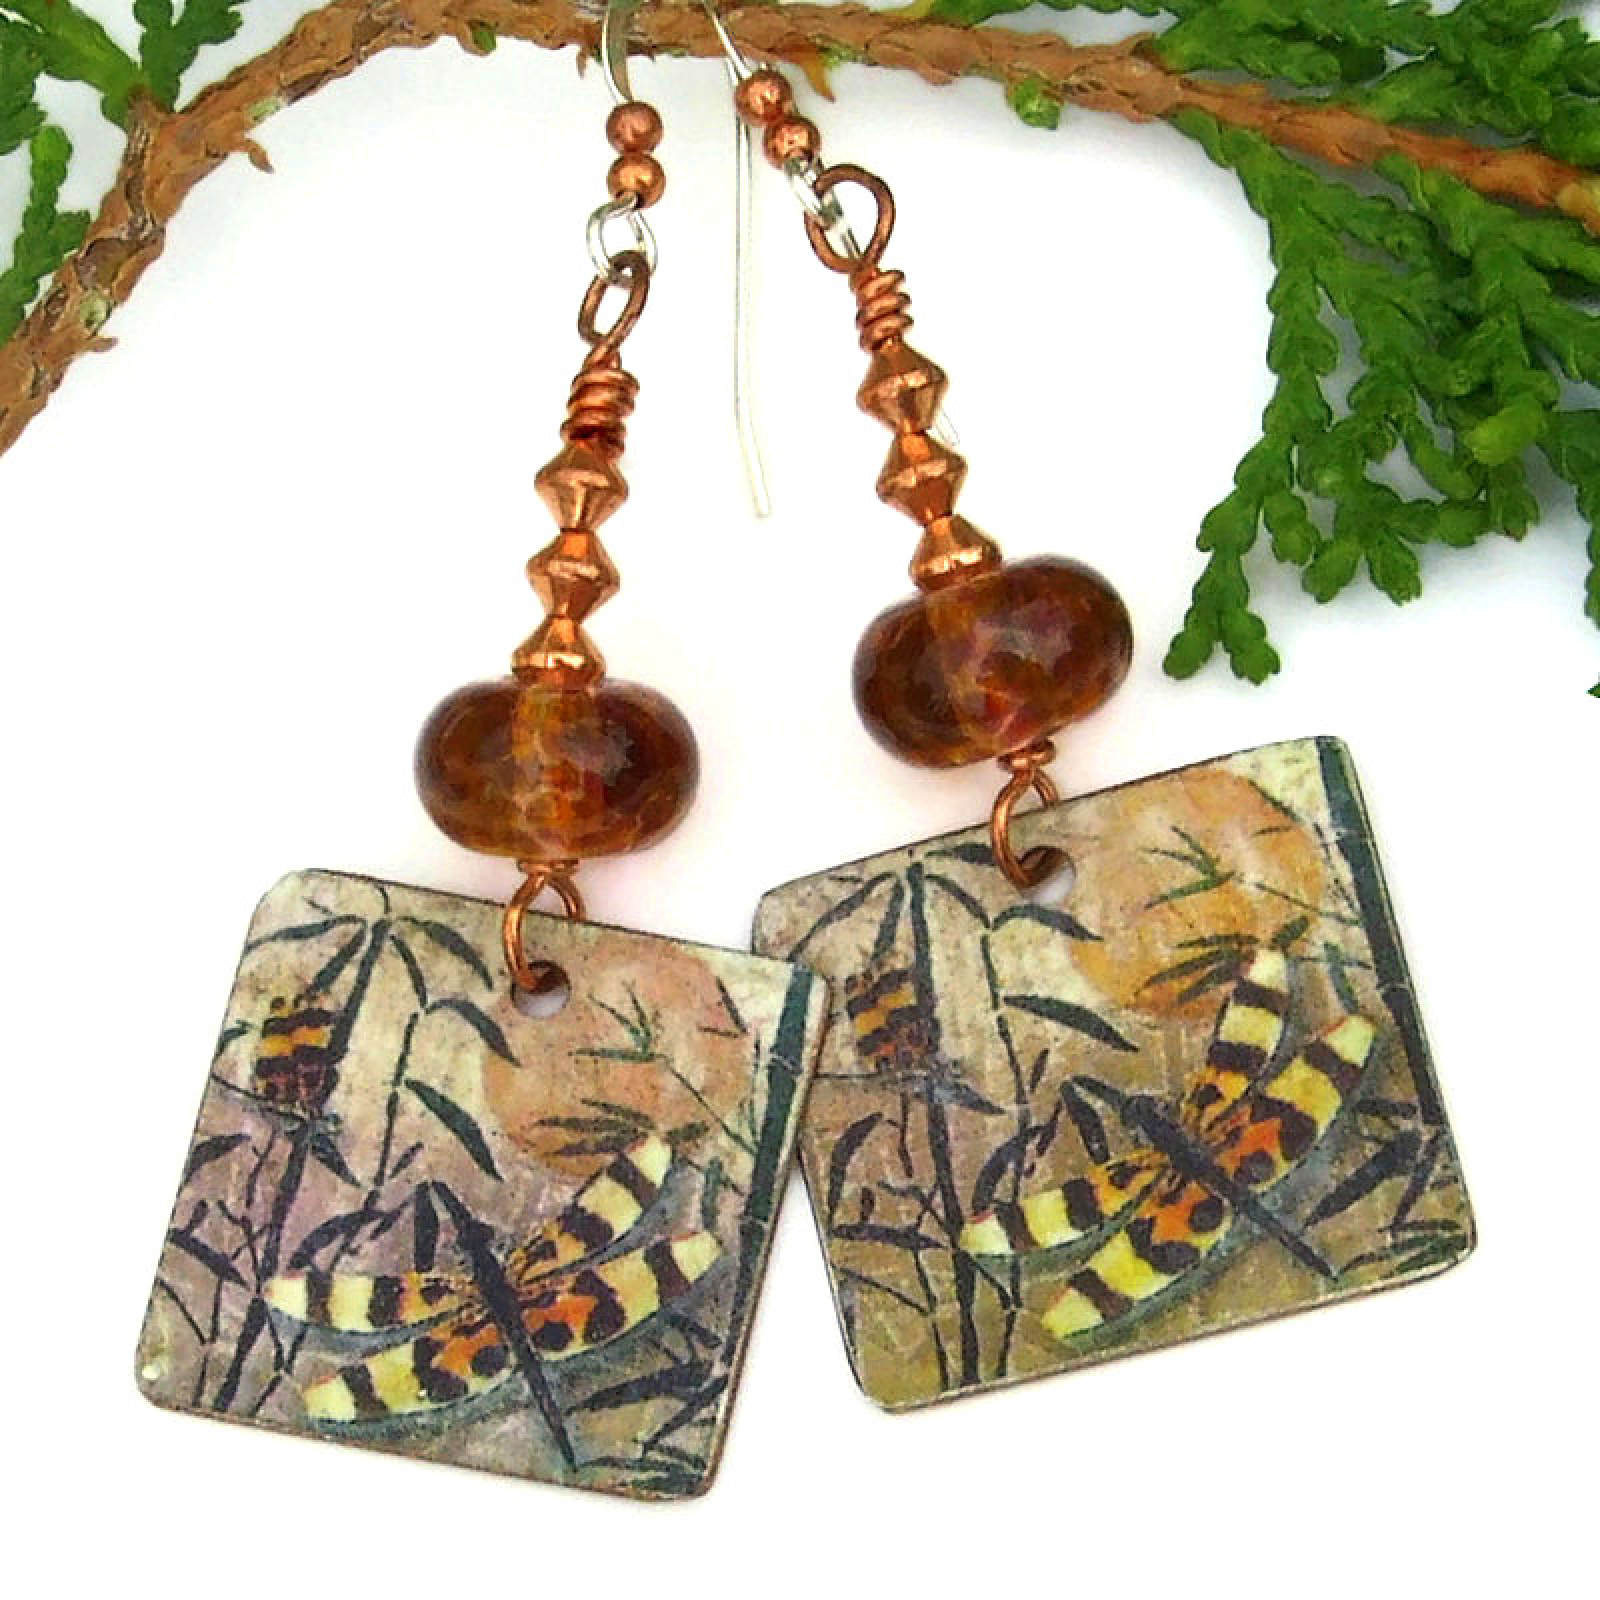 Dragonfly Earrings, Copper Lampwork Vintage Look Handmade Jewelry Gift